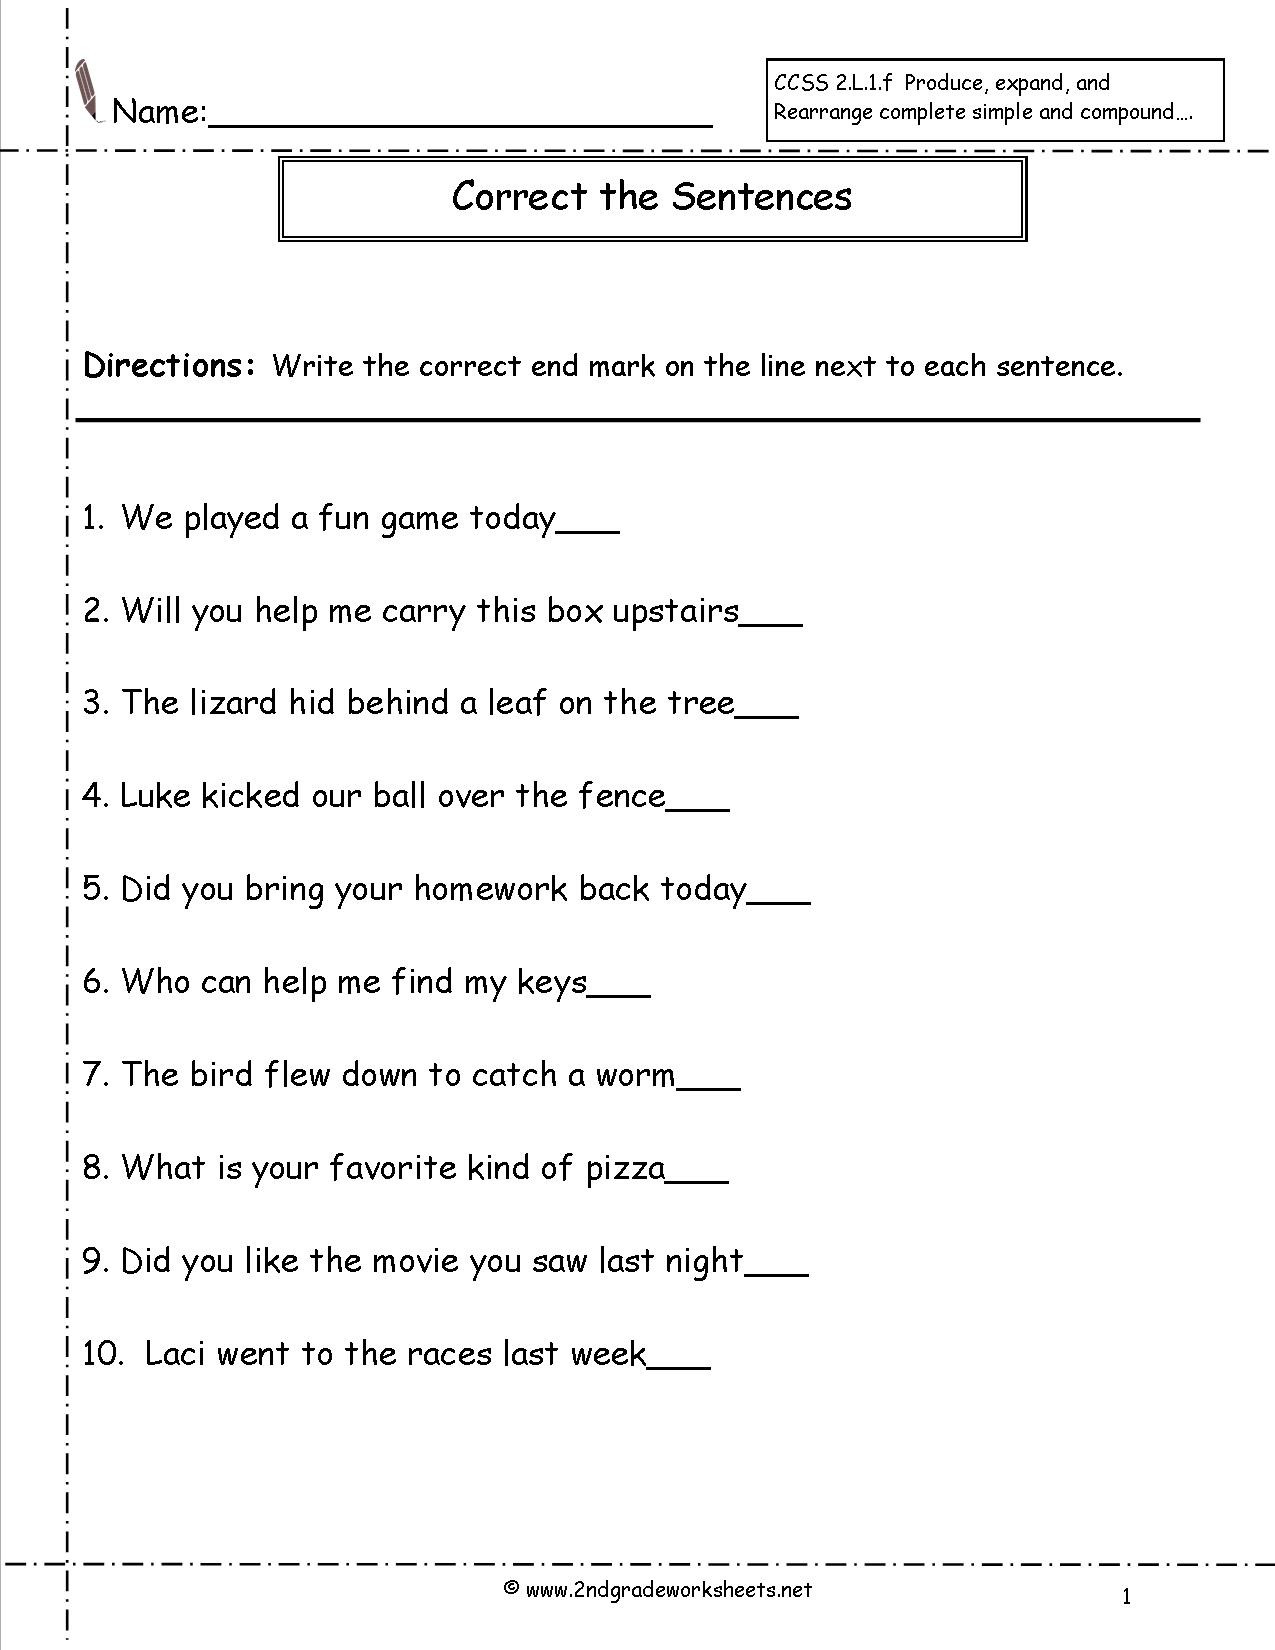 Sentence Correction Worksheets 2nd Grade Sentence Correction Worksheets 6th Grade